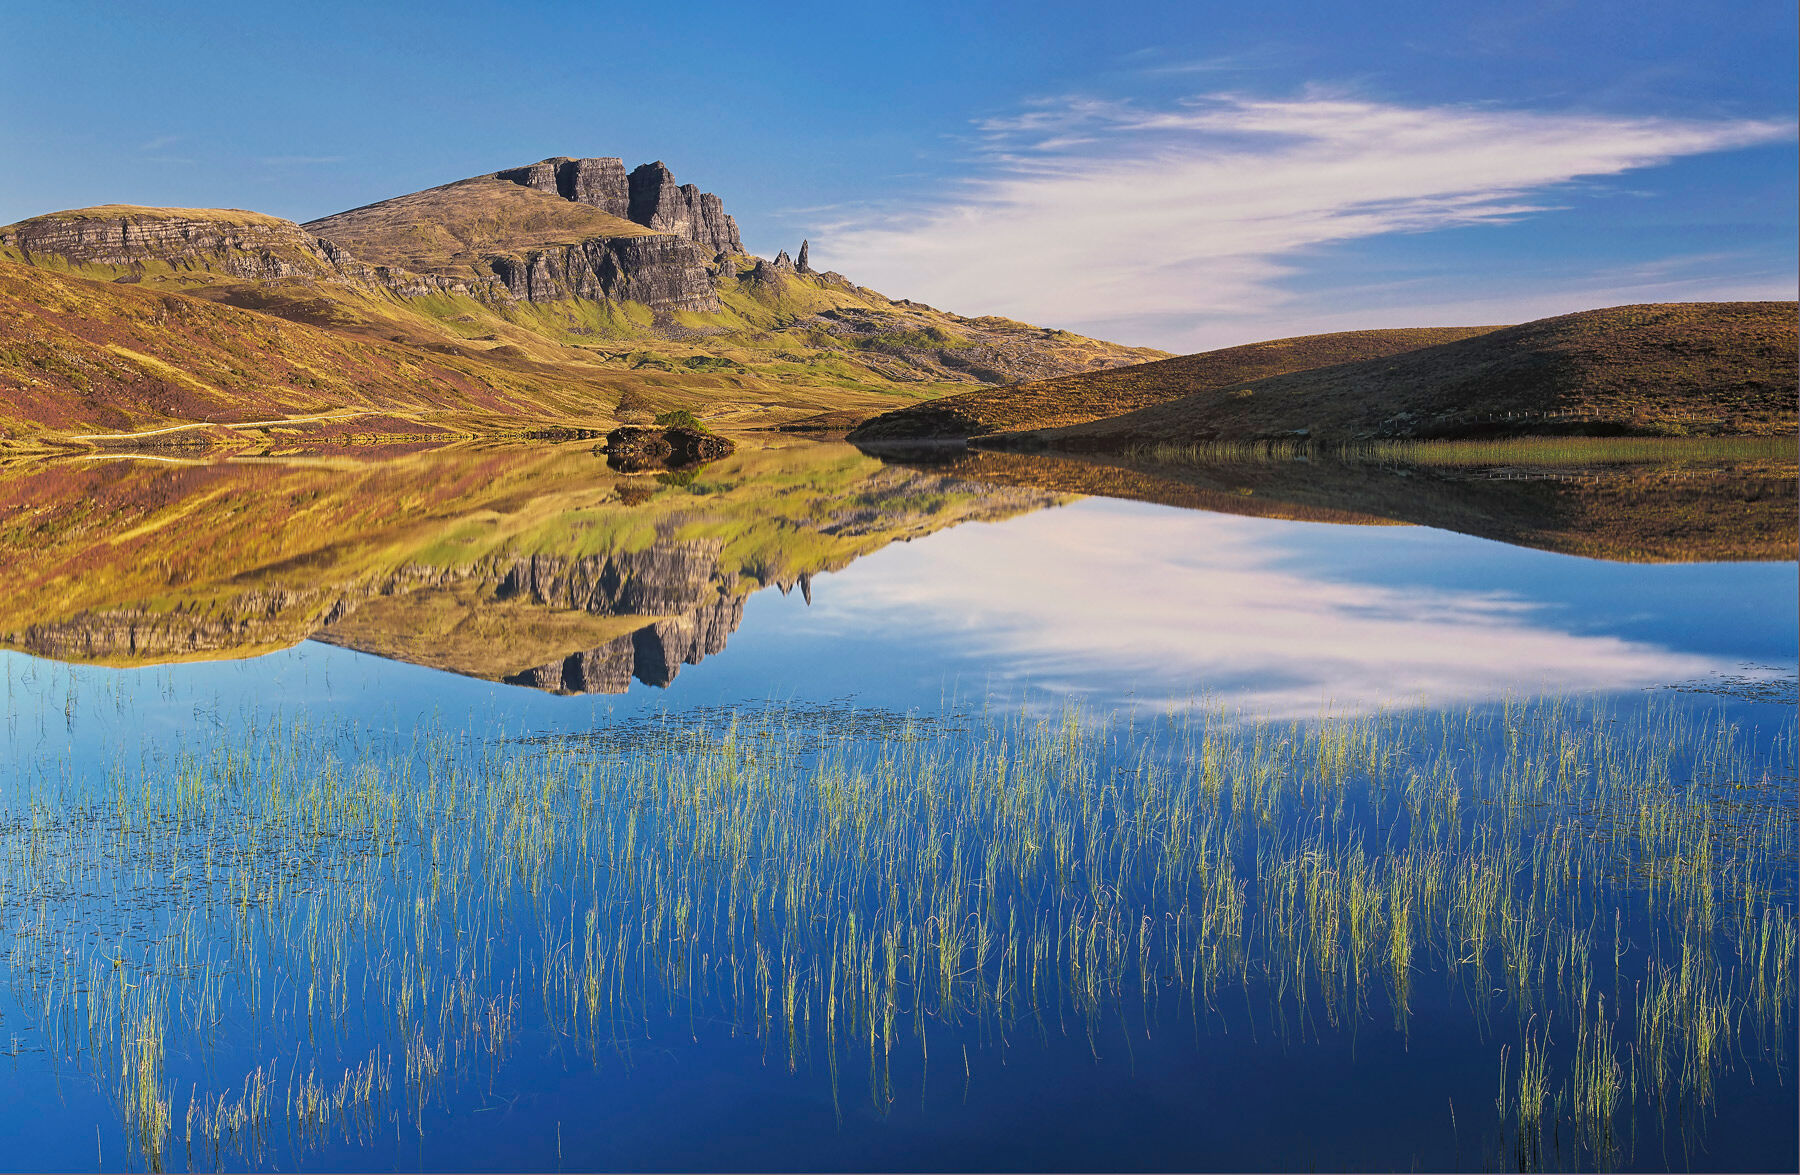 Loch Fada Sublime, Loch Fada, Skye, Scotland, perfect morning, spiked, reed, bed, pattern, needle, Old Man of Storr  , photo